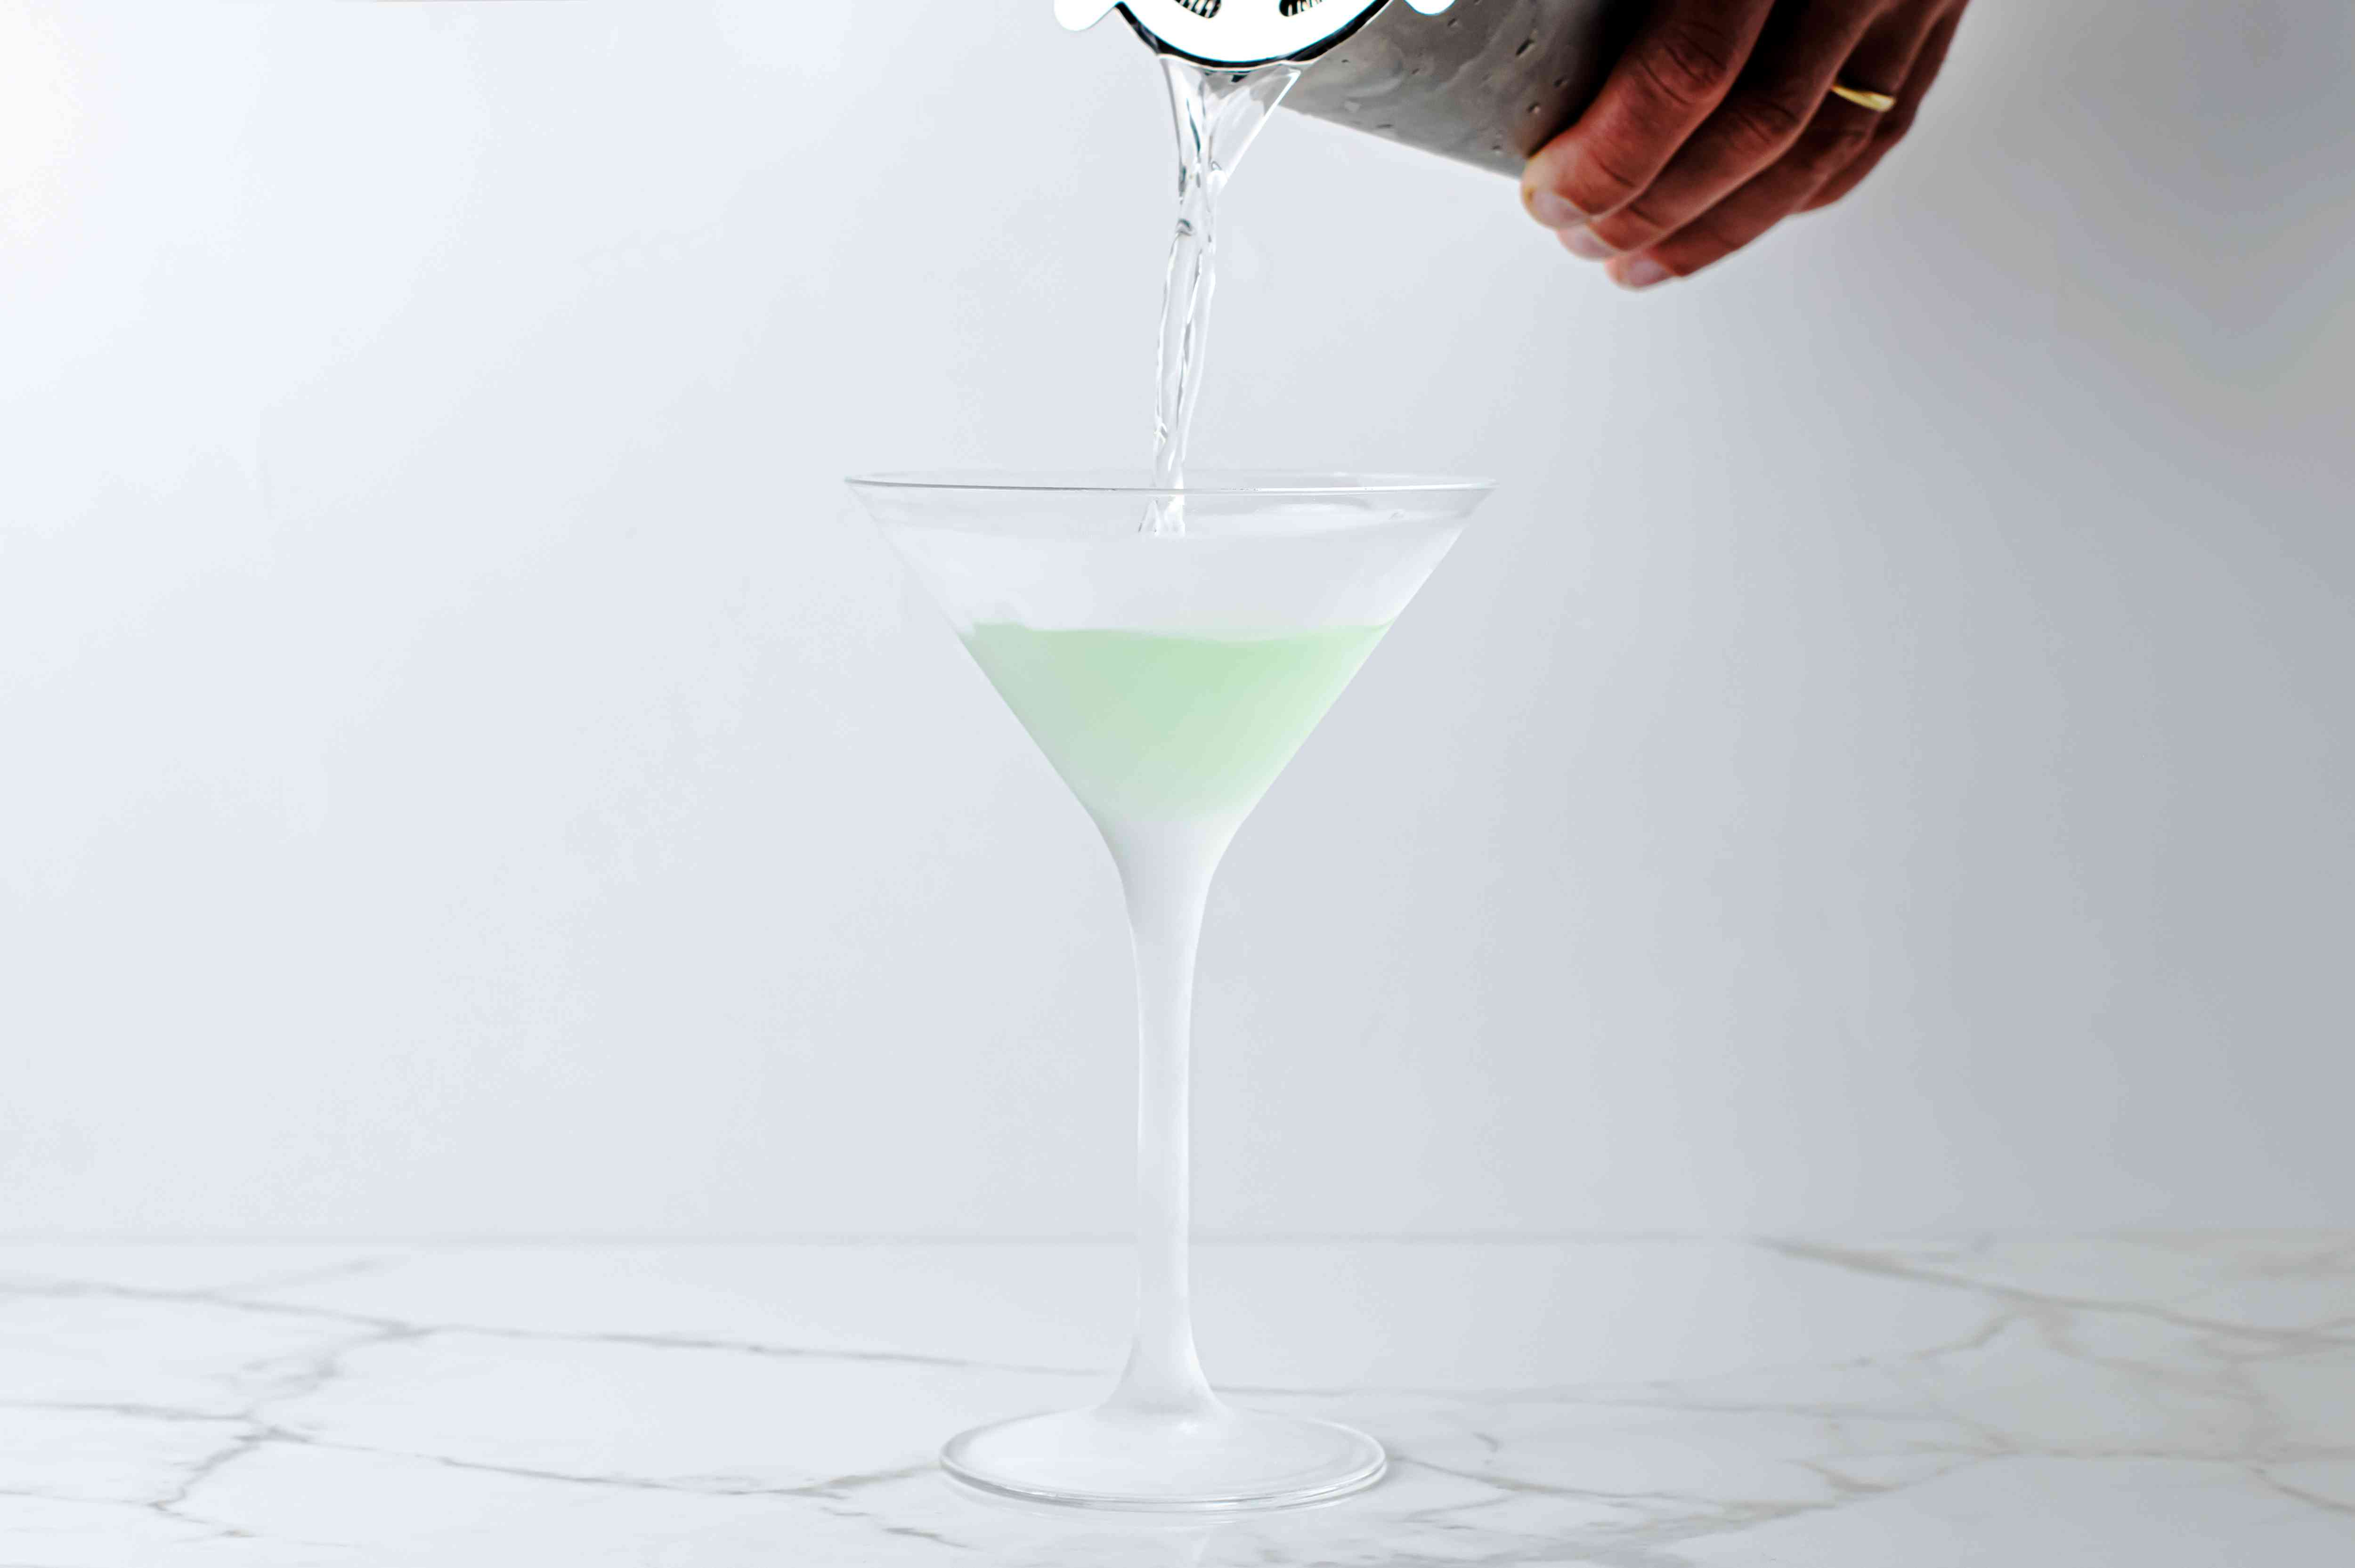 Pouring a green apple martini cocktail from a shaker into a glass